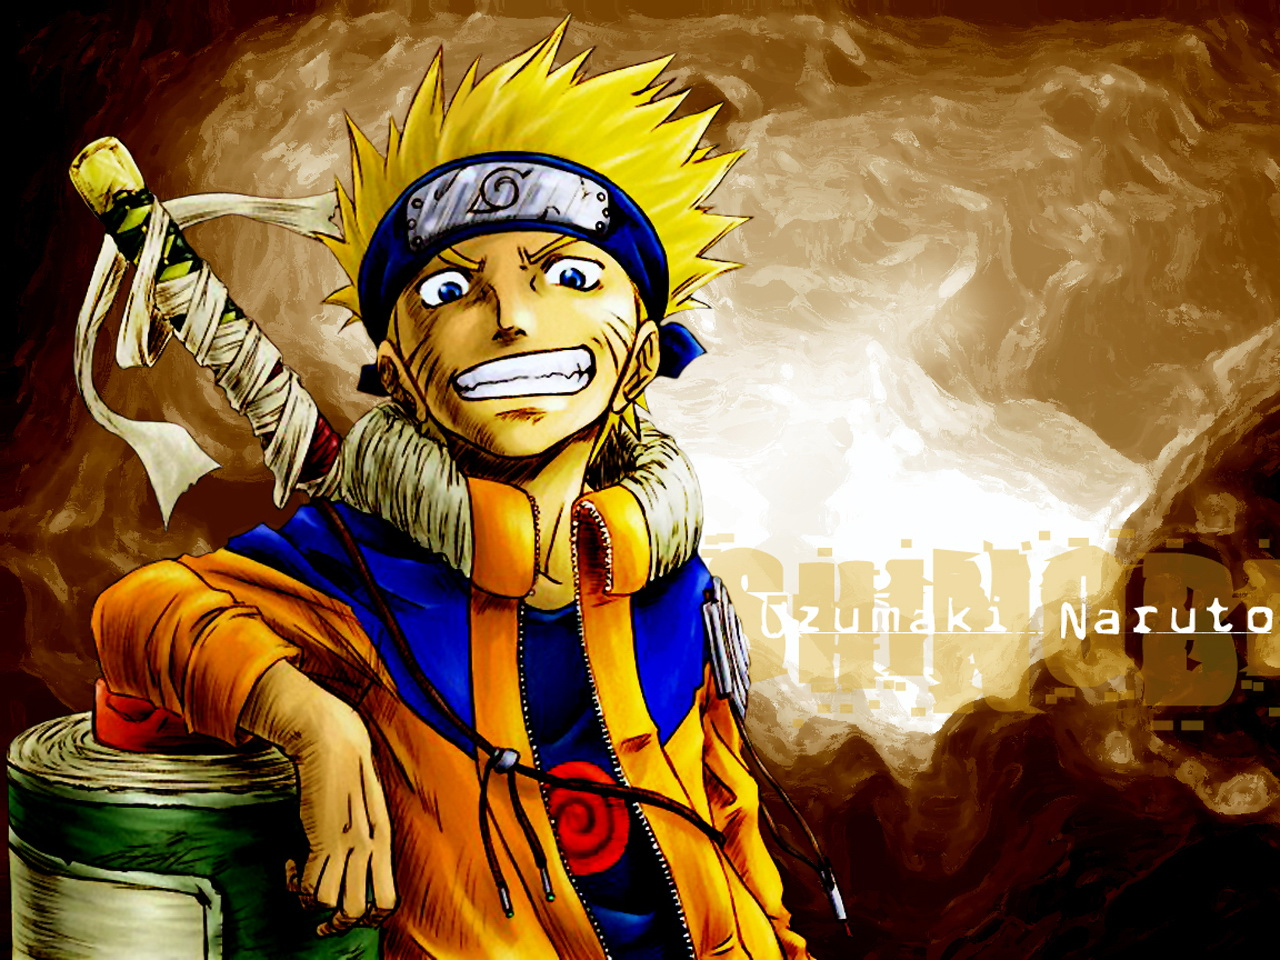 Naruto Anime Naruto Shippuden Wallpapers  Naruto Shippuden Wallpapers